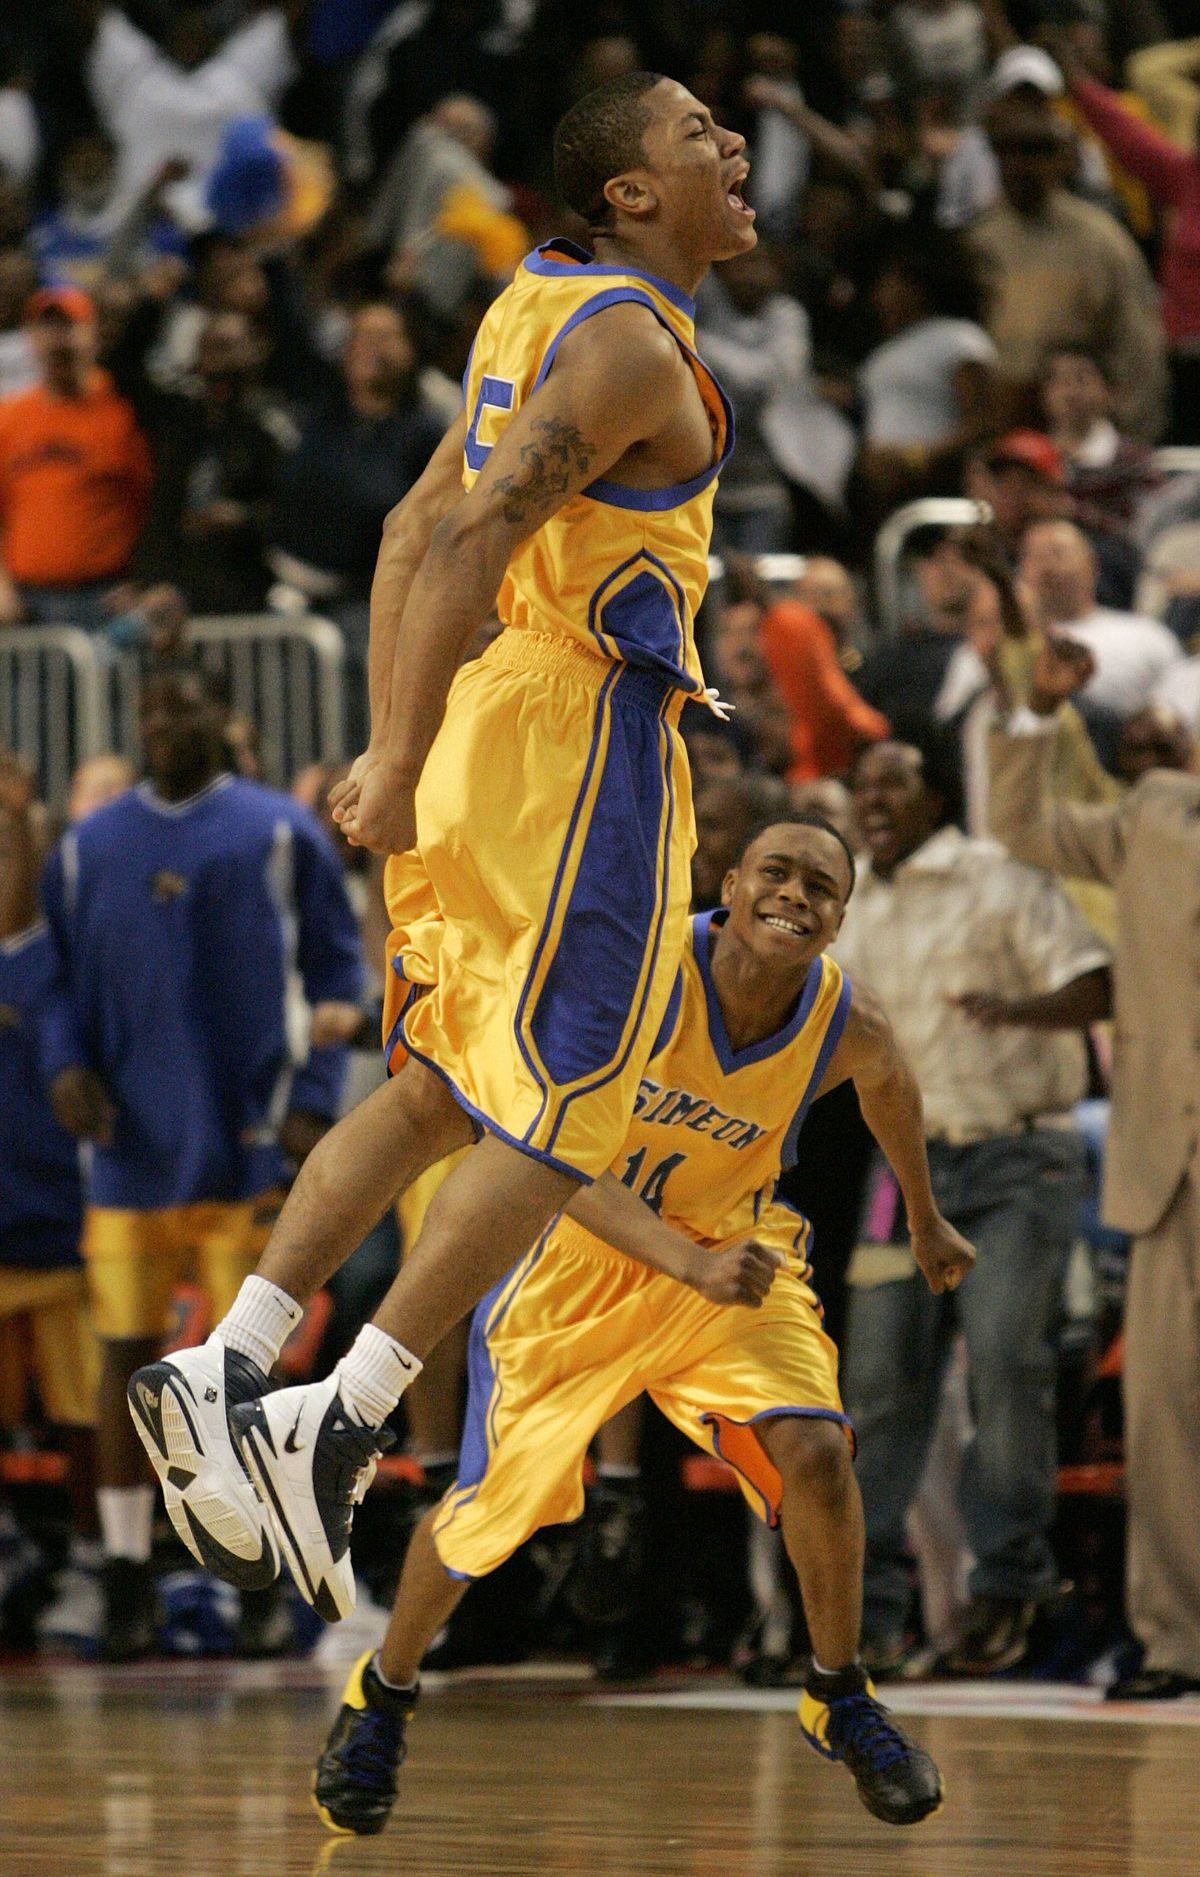 Simeon's Derrick Rose, left, and Randall Hampton celebrate after Rose hit a last-second shot to beat Peoria Richwoods in overtime of the championship game of the IHSA Class AA state basketball tournament.